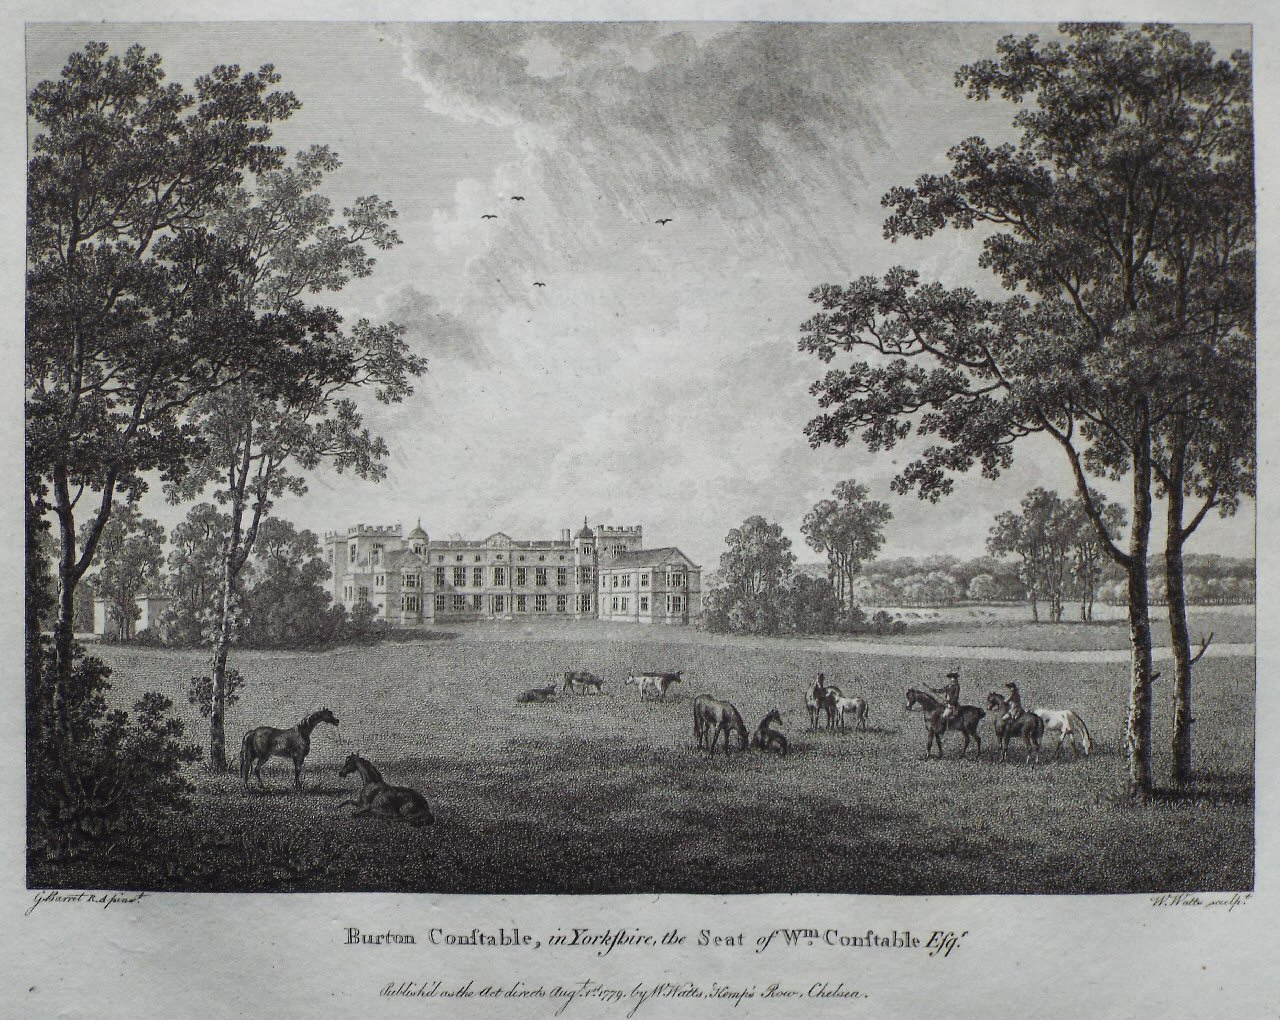 Print - Burton Constable, in Yorkshire, the Seat of Wm Constable Esqr - Watts